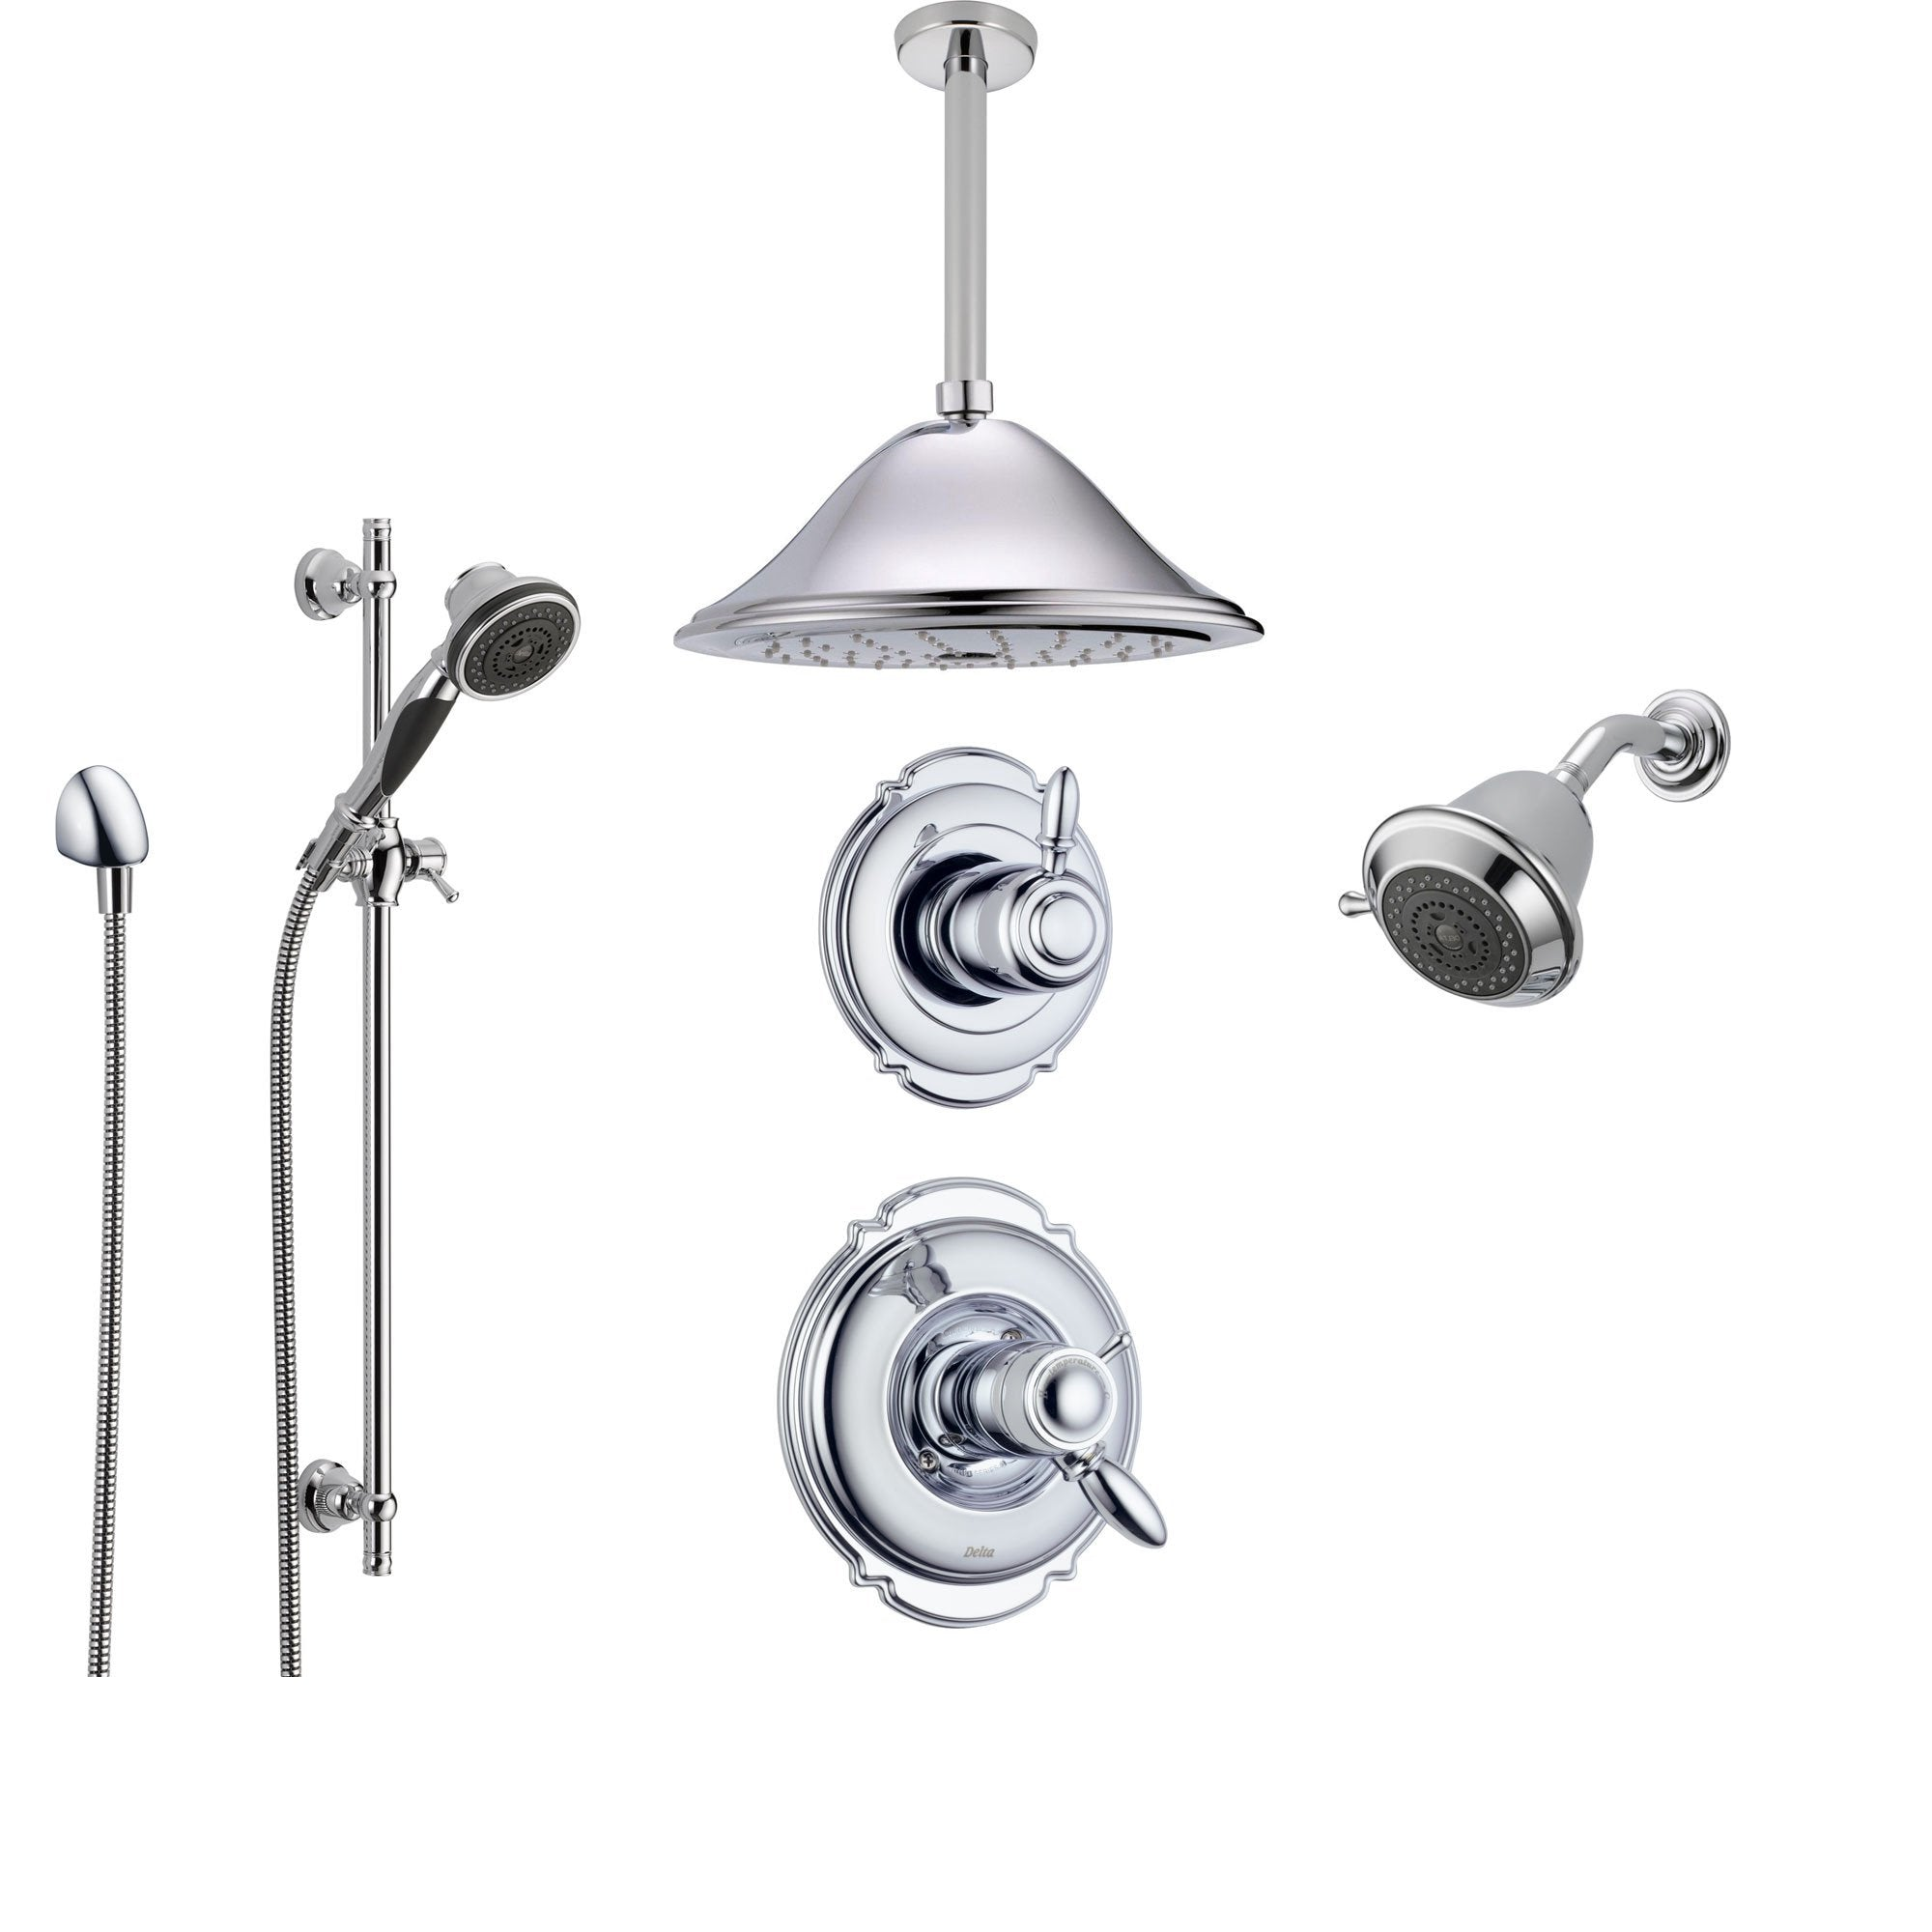 Delta Victorian Chrome Shower System with Thermostatic Shower Handle, 6-setting Diverter, Large Ceiling Mount Rain Showerhead, Handheld Shower, and Wall Mount Showerhead SS17T5594